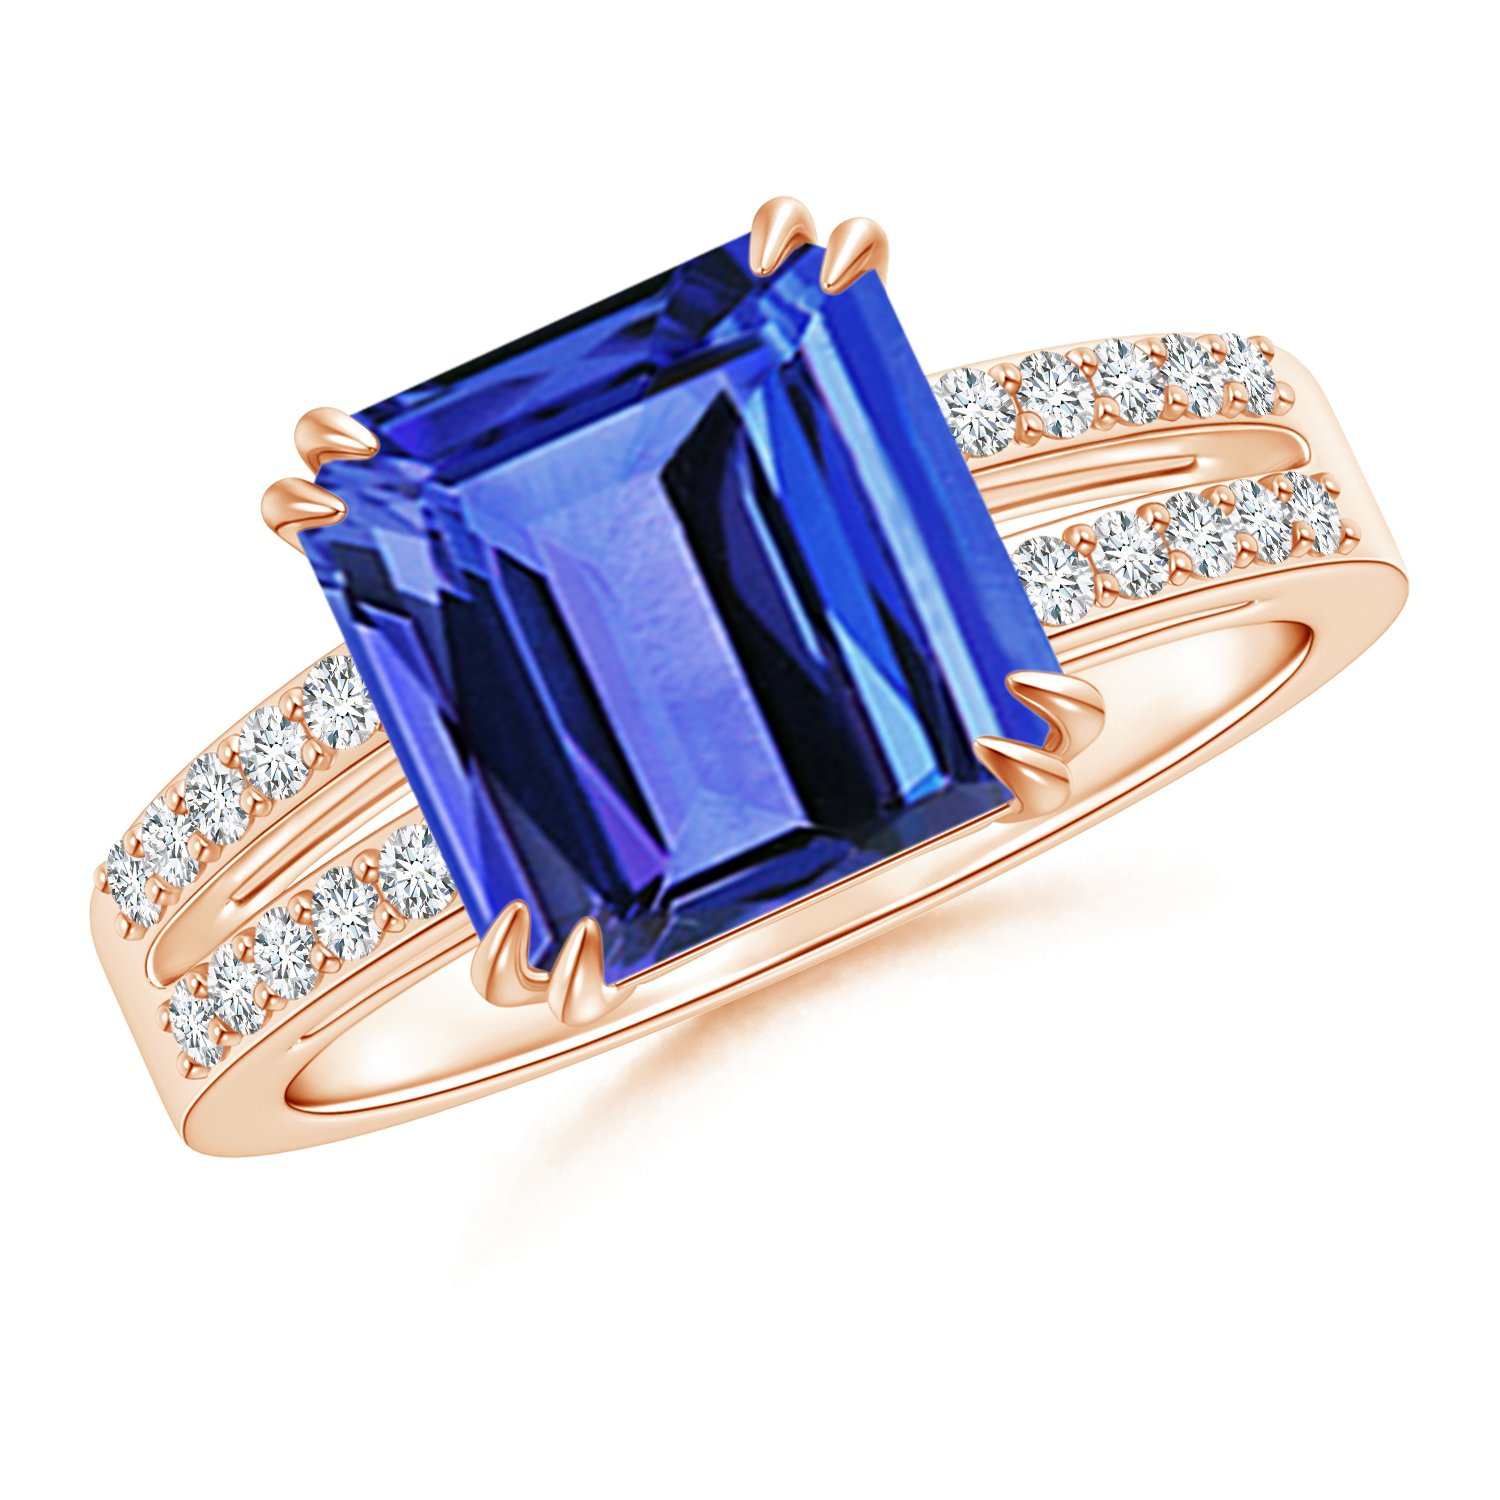 Holiday Offer - December Birthstone - Claw Set Emerald Cut Tanzanite Ring for Women with Diamond Accents in 14K Rose Gold (9mm Tanzanite) by Angara.com (Image #1)